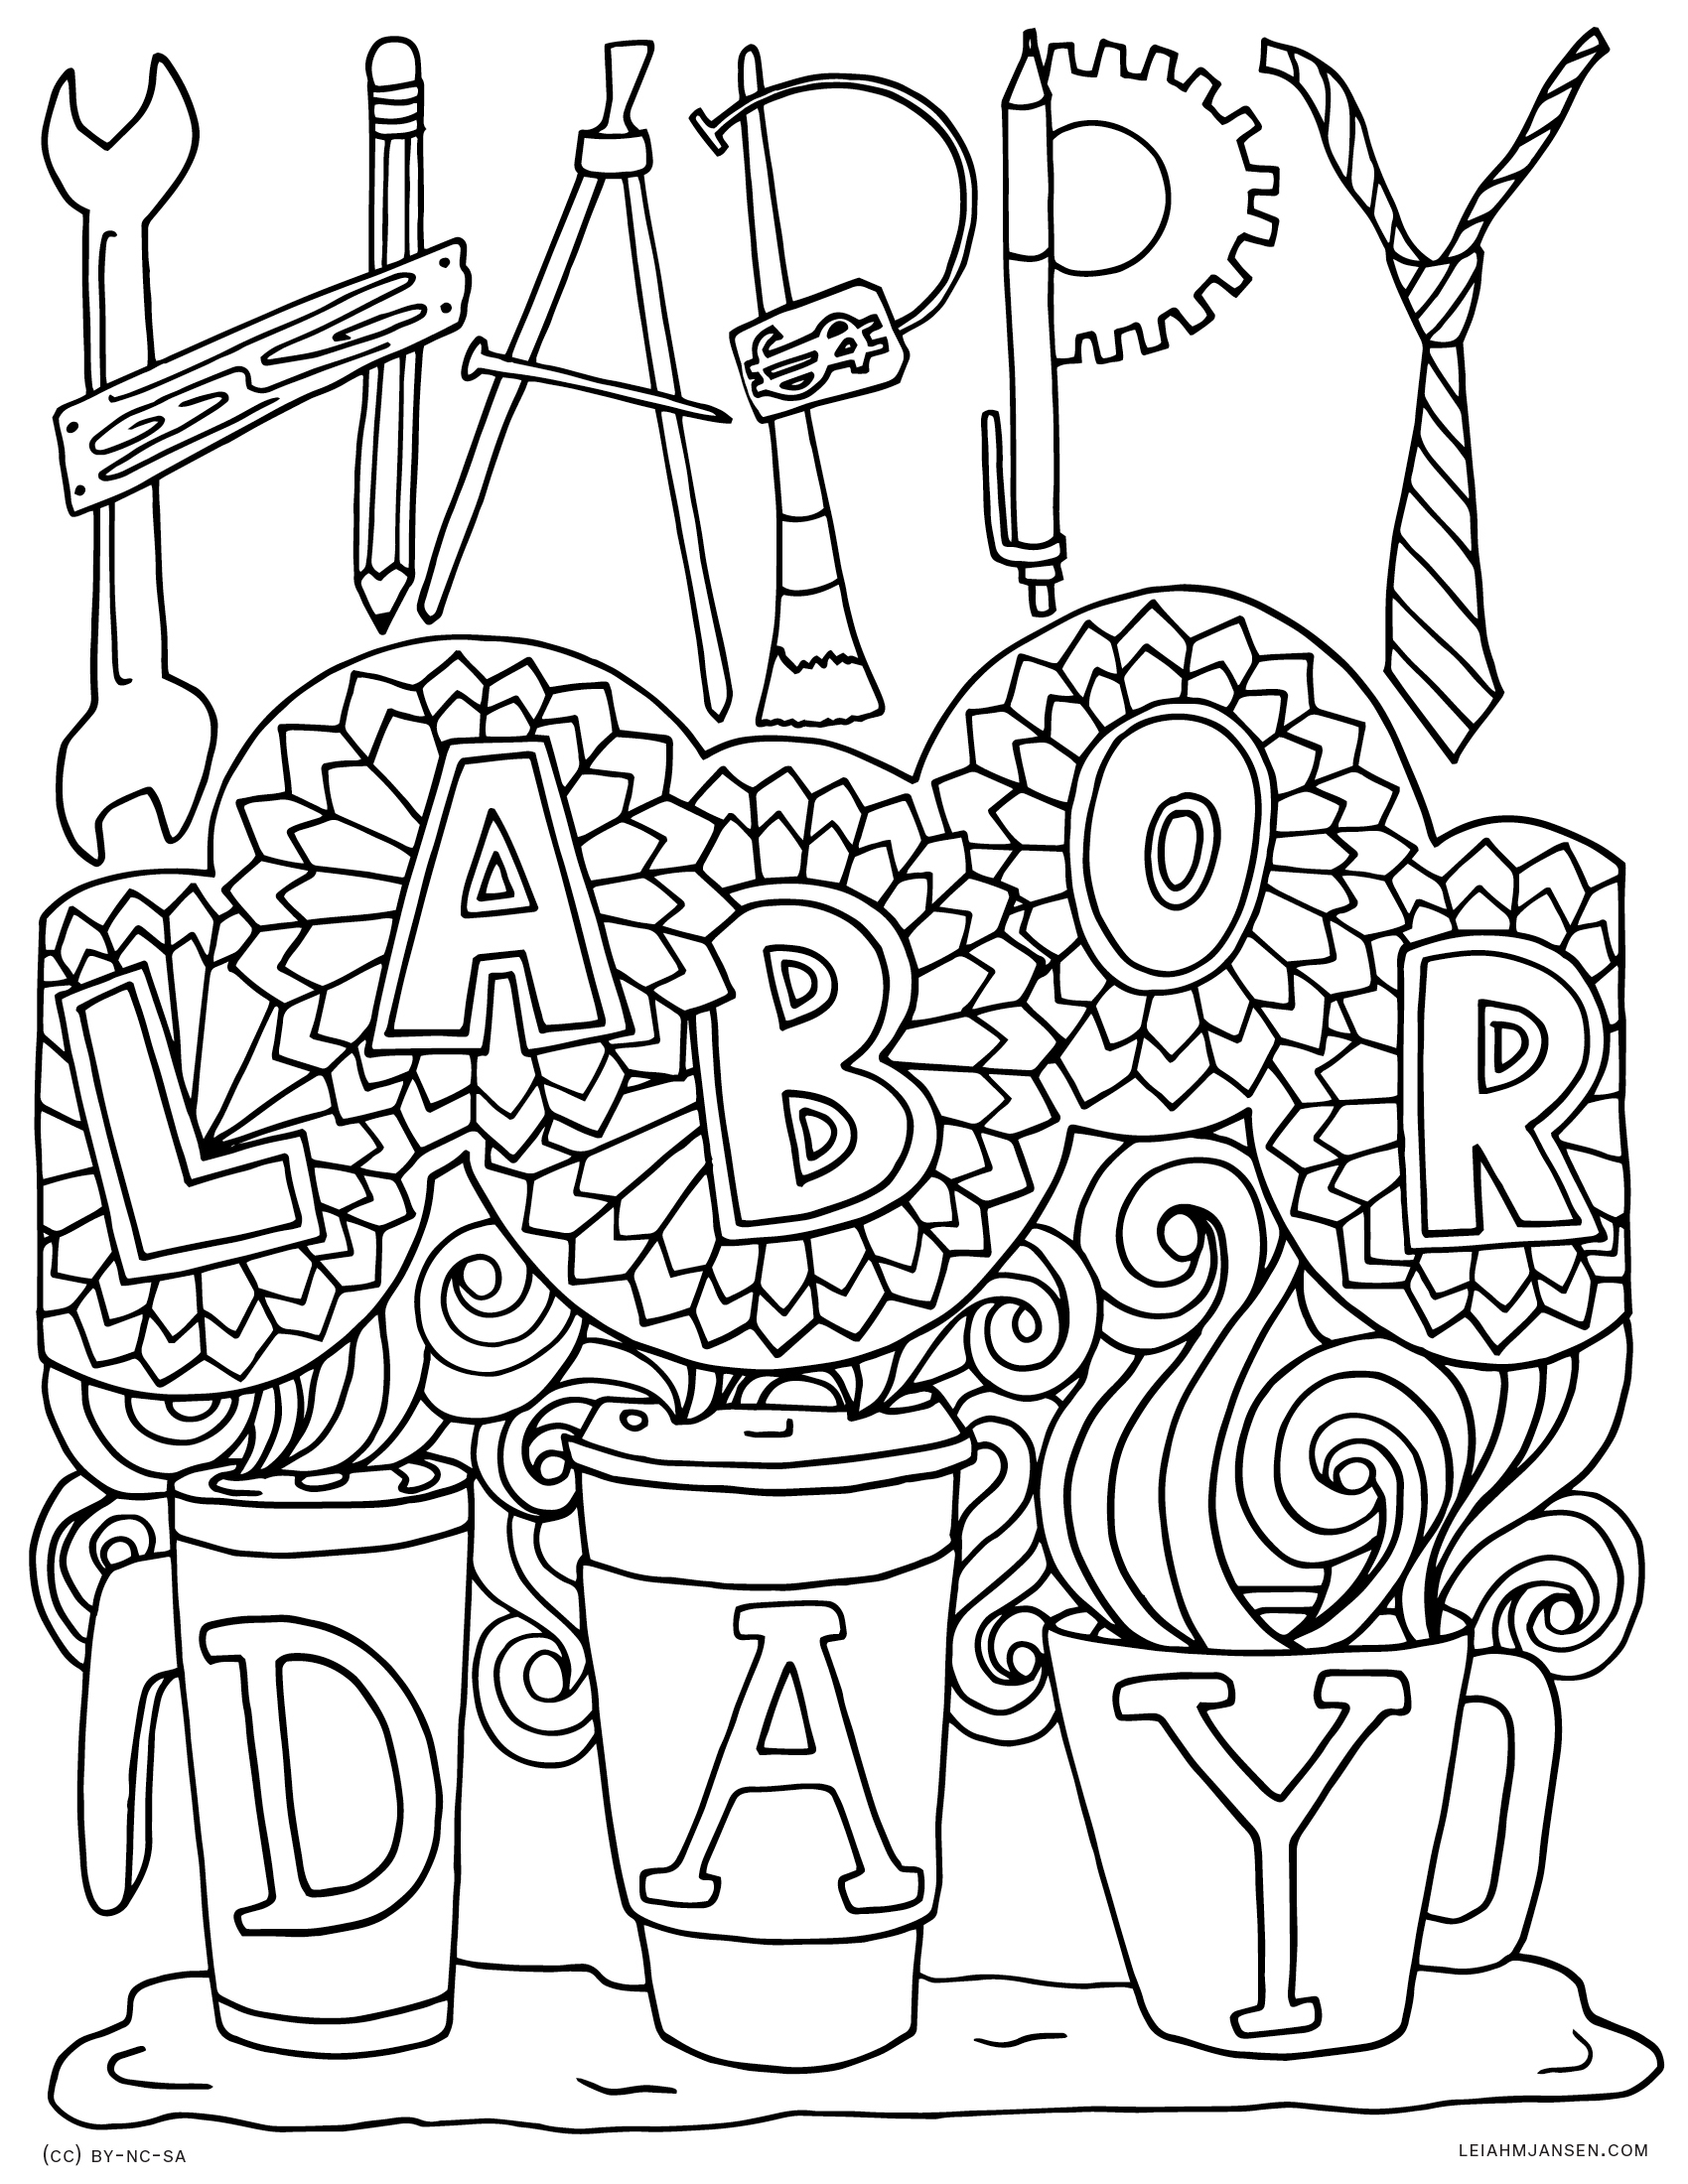 tools patriotism are fueled by coffee happy labor day free printable coloring page - Labor Day Coloring Pages Kids